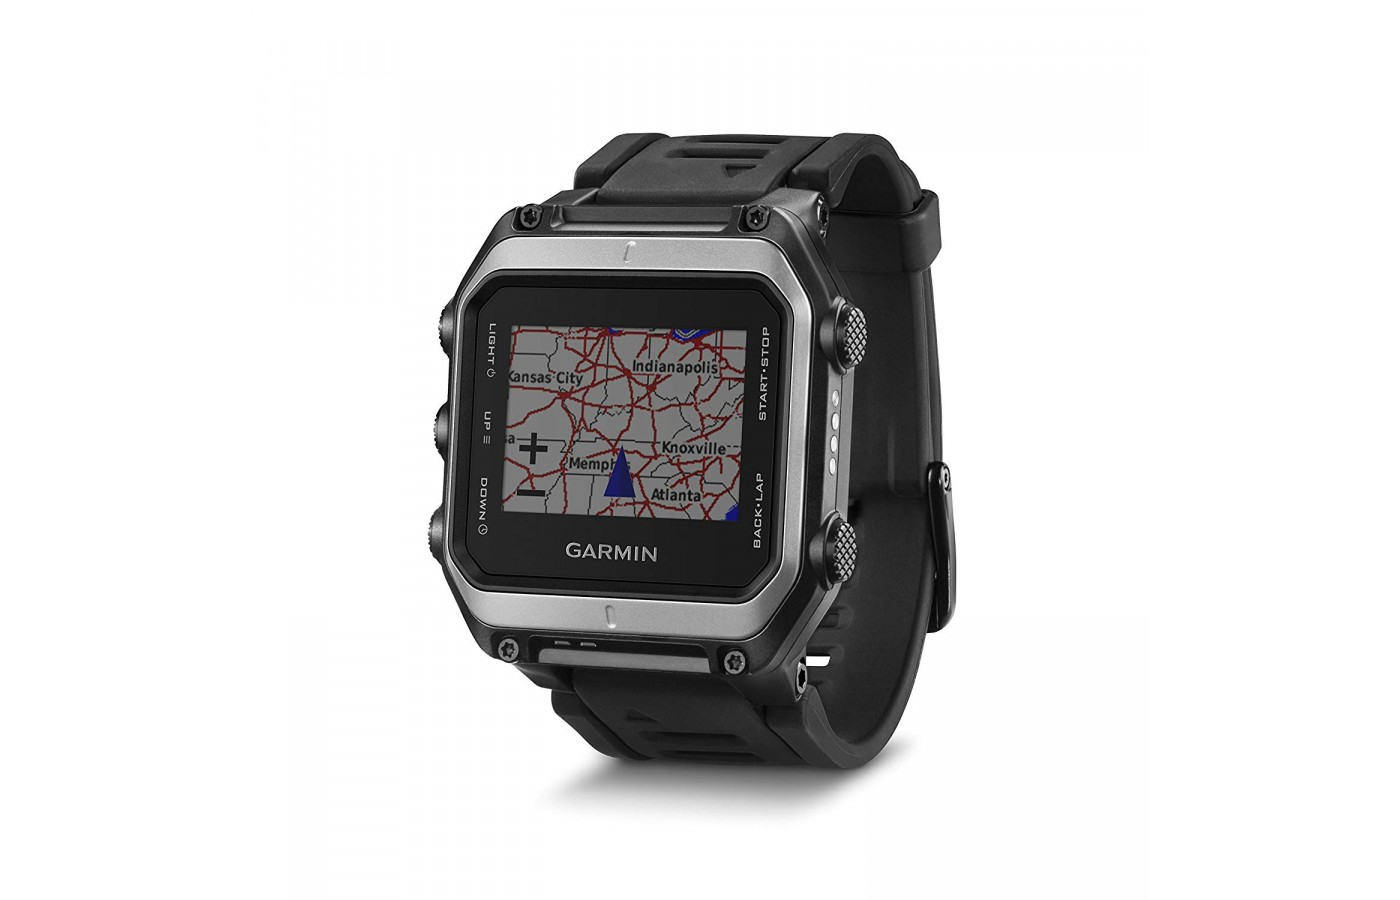 The watch has a highly accurate GPS.